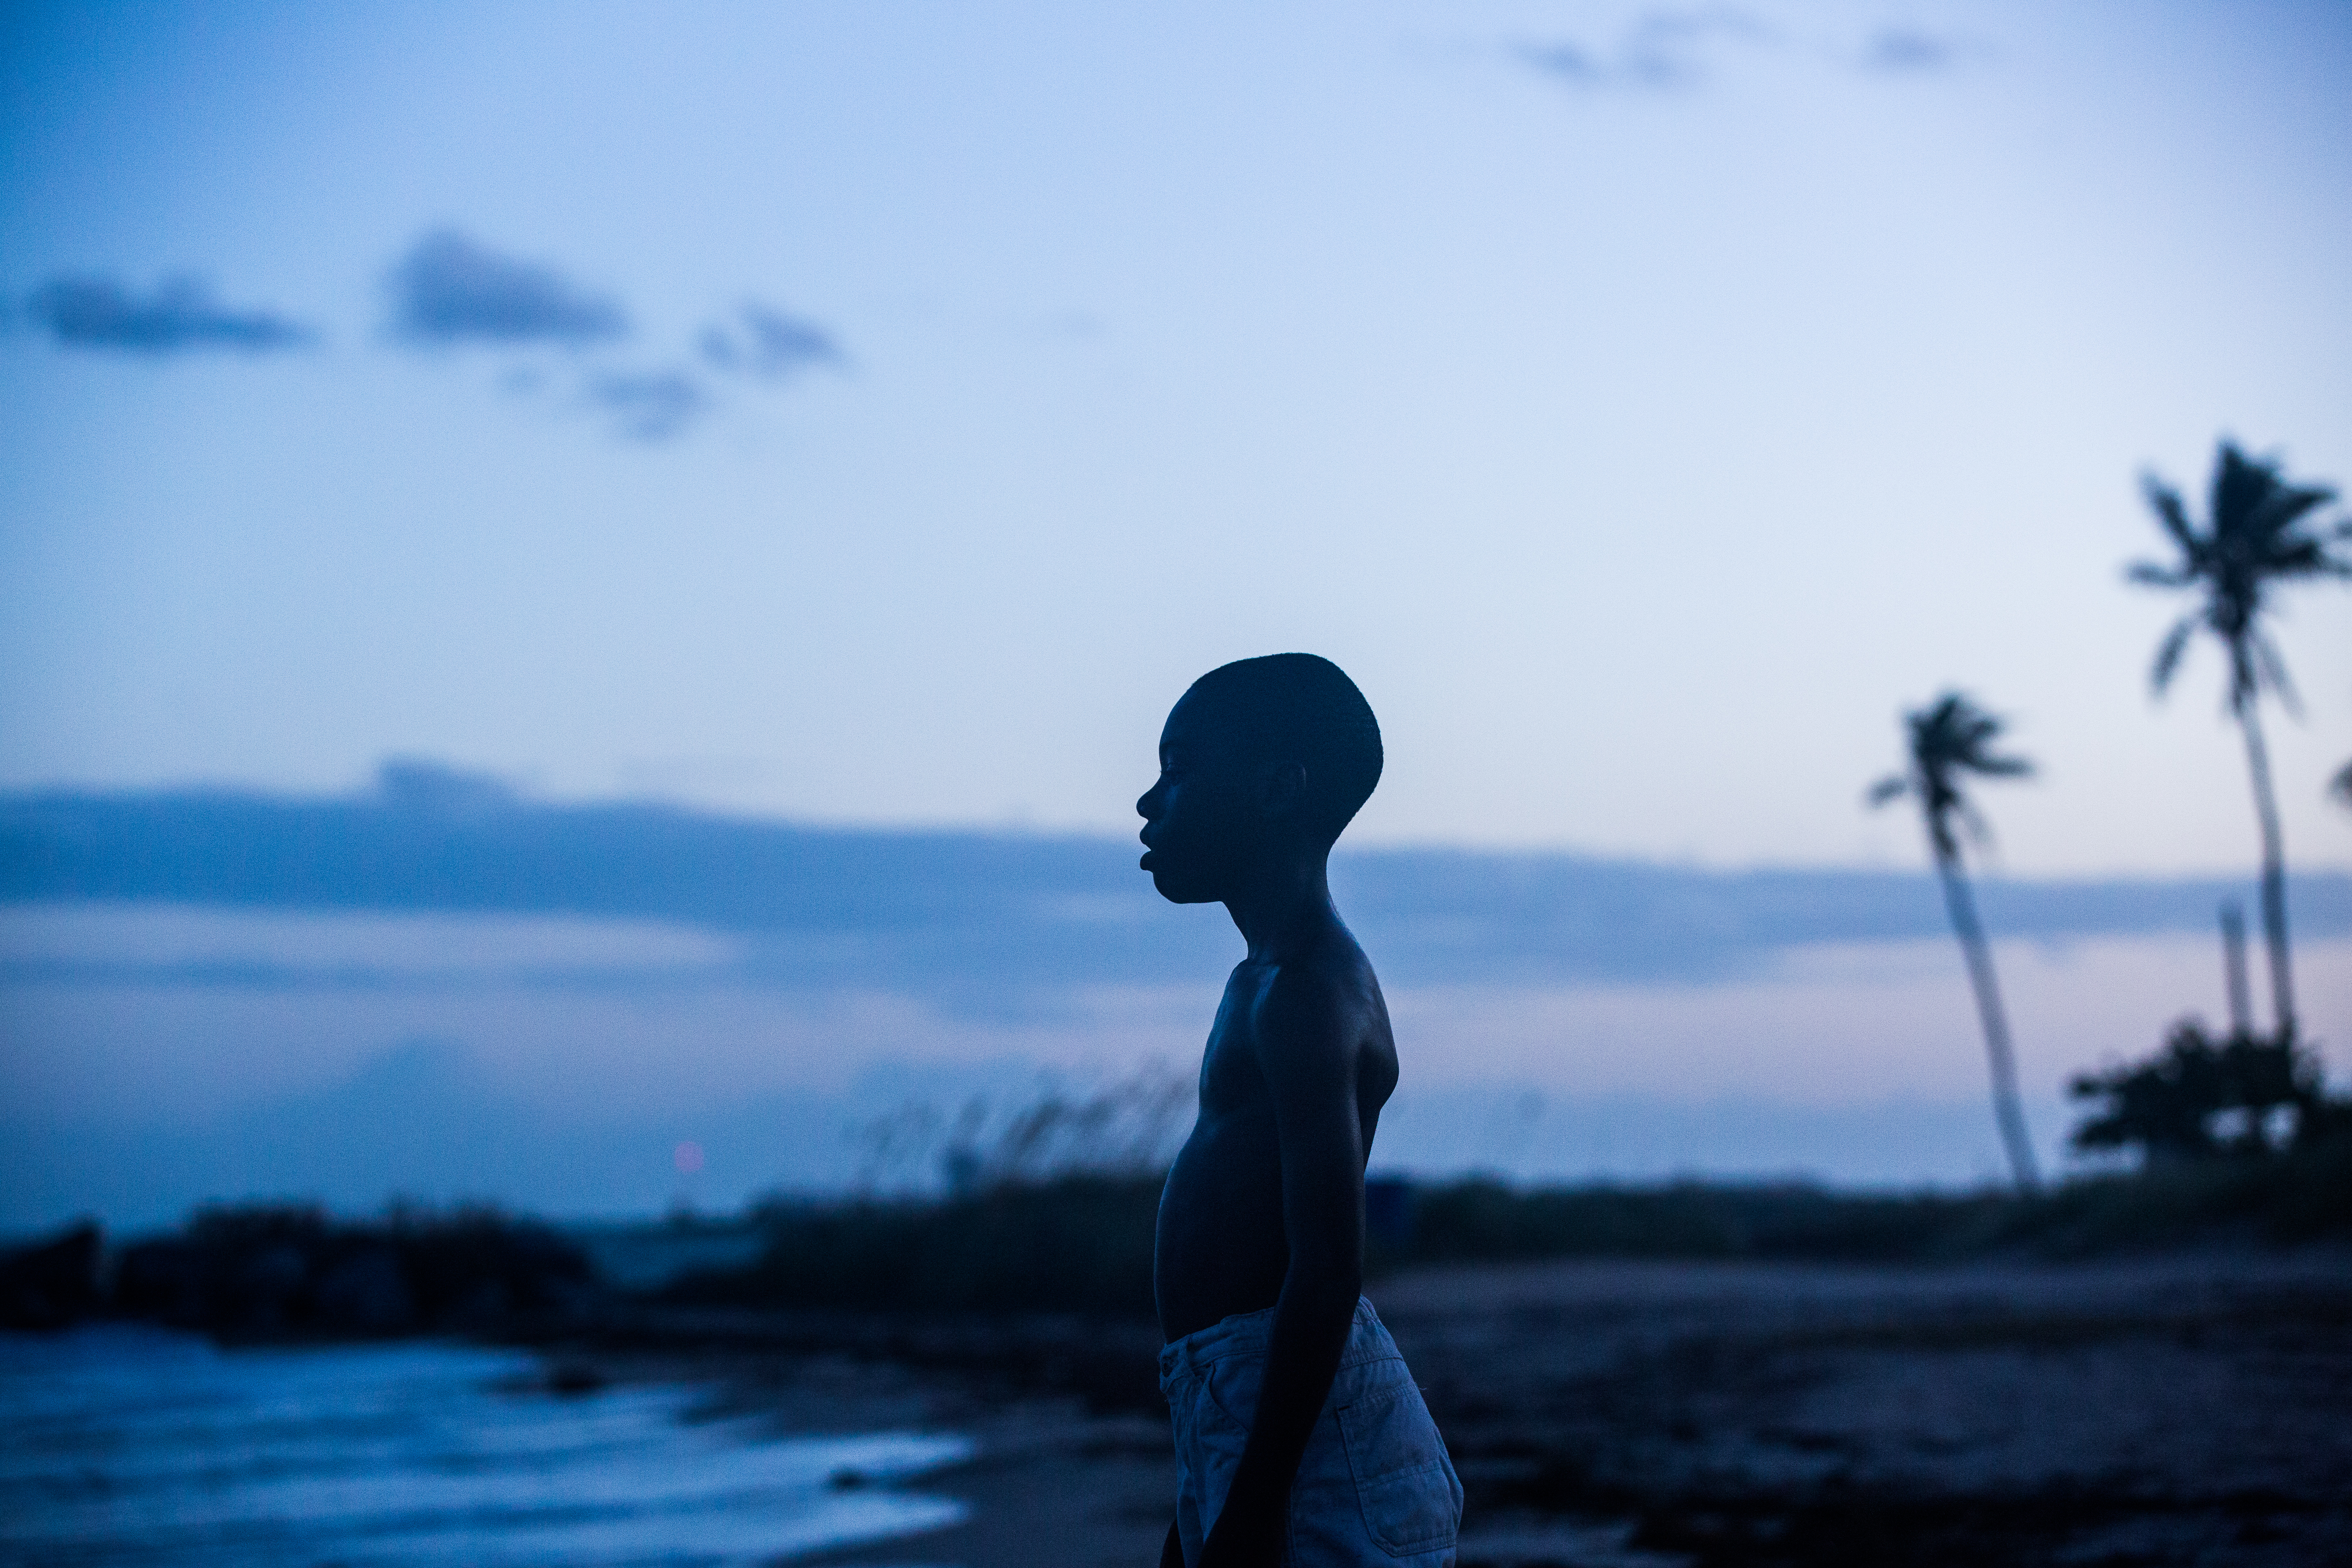 'Moonlight' depicts vivid, honest coming-of-age story